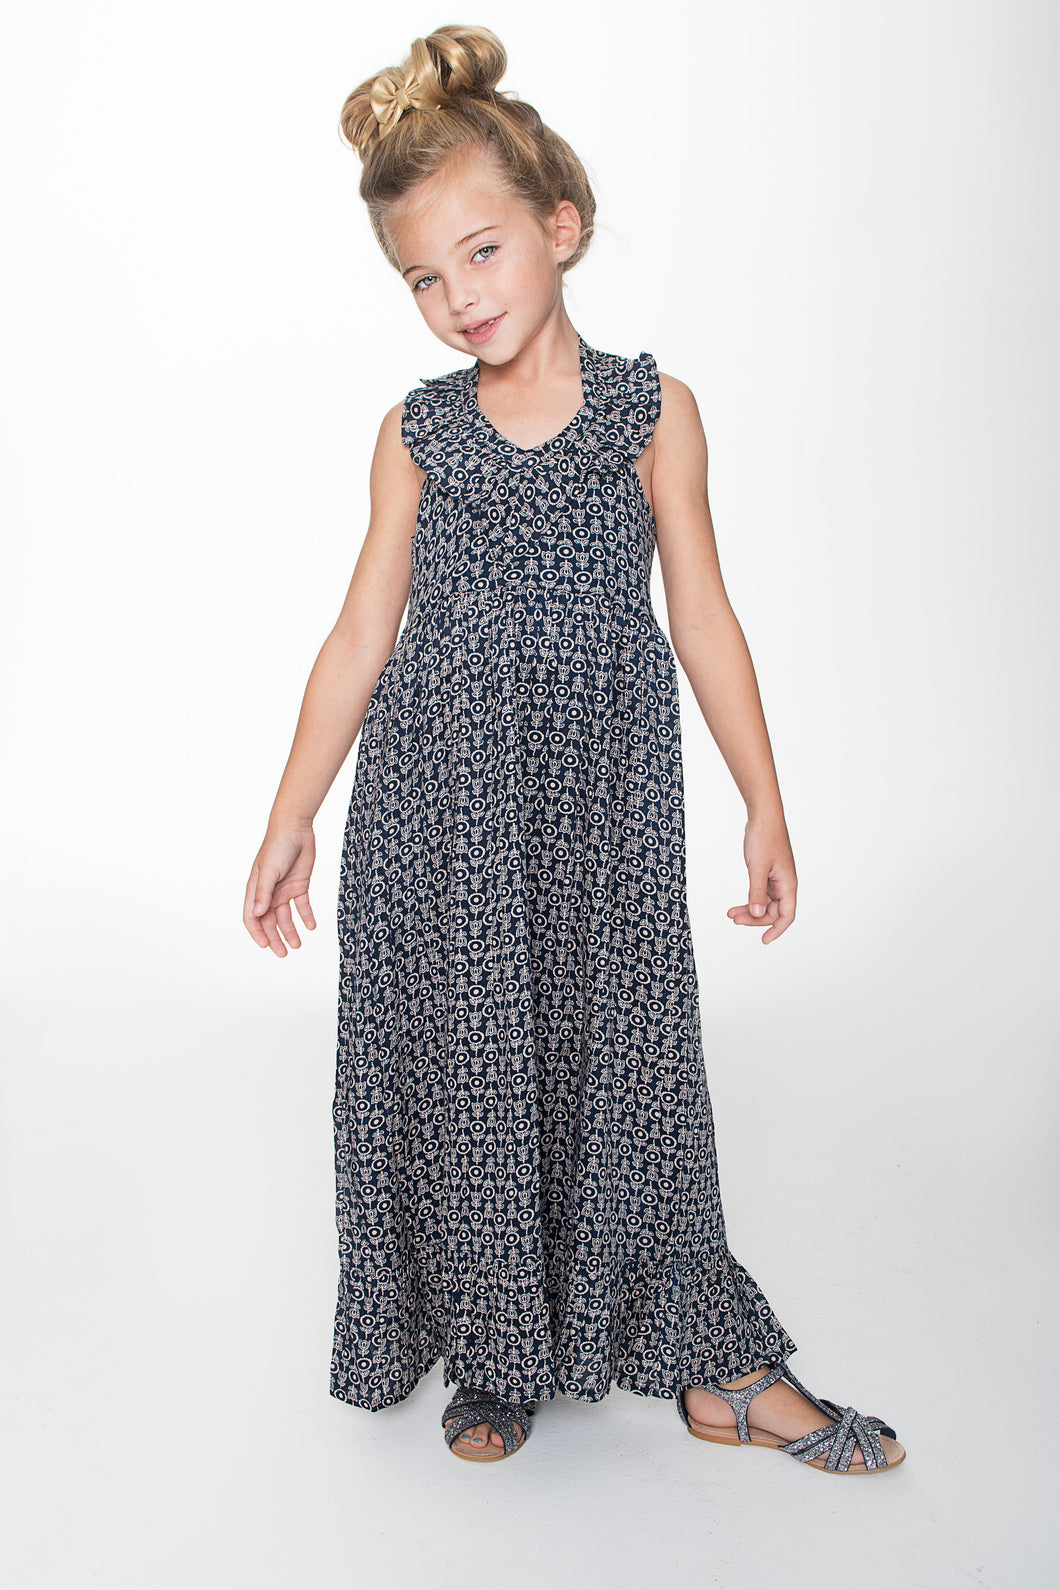 Navy Halter Maxi Dress - Kids Wholesale Boutique Clothing, Dress - Girls Dresses, Yo Baby Wholesale - Yo Baby